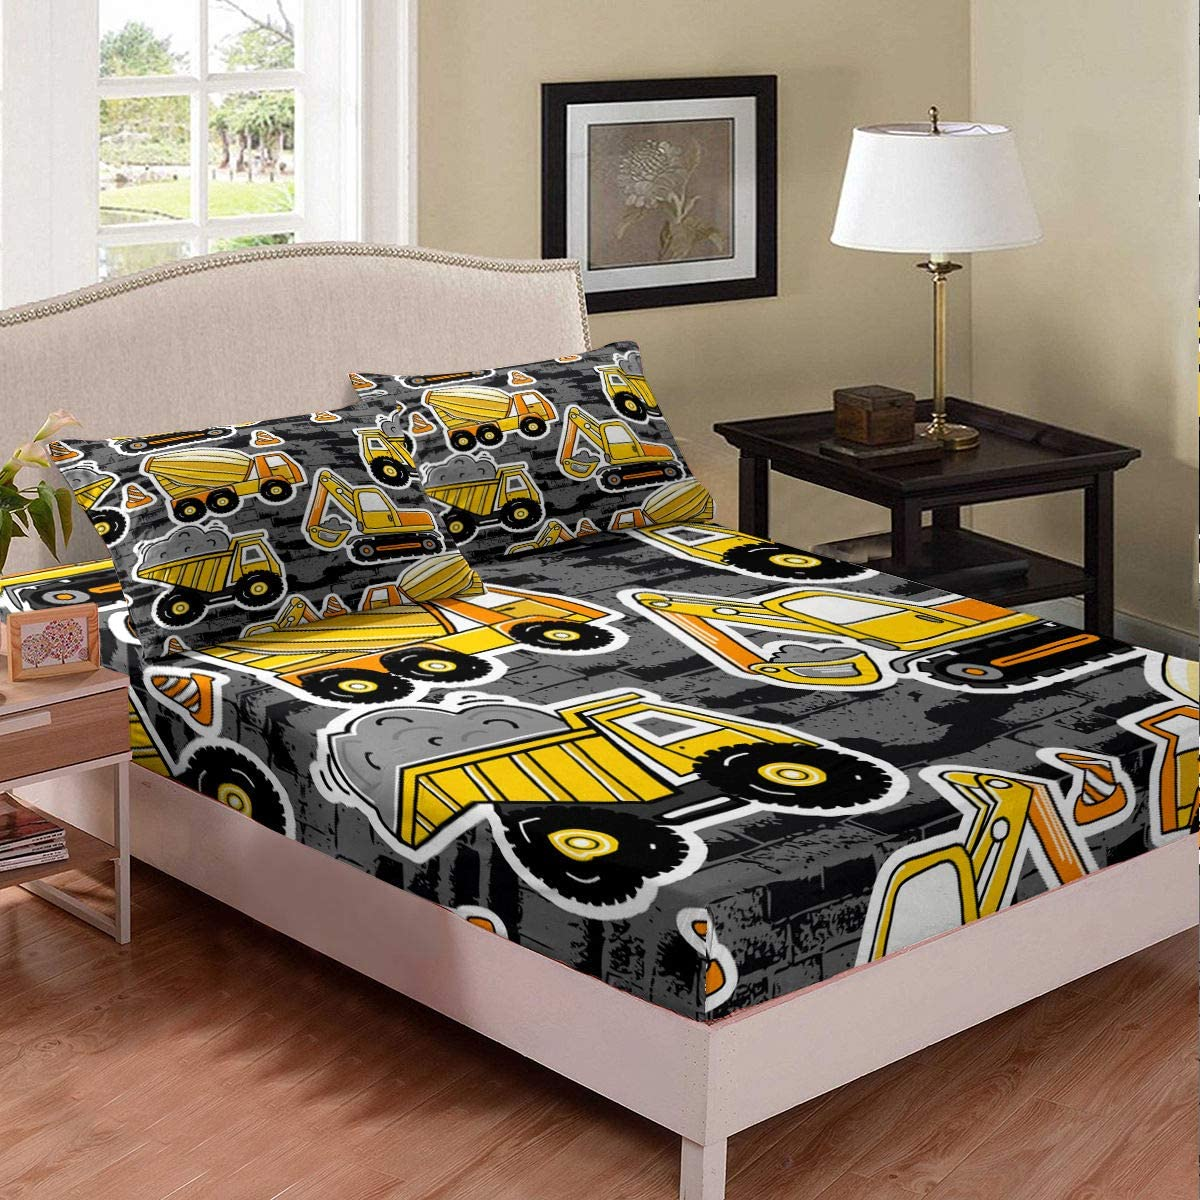 Teens Gamer Bedding Set Deep Pocket Video Game Controller Sheet Set For Kids Boys Girls Modern Gamepad With Action Buttons Black White Bed Cover Full Size 1 Fitted Sheet With 2 Pillow Cases